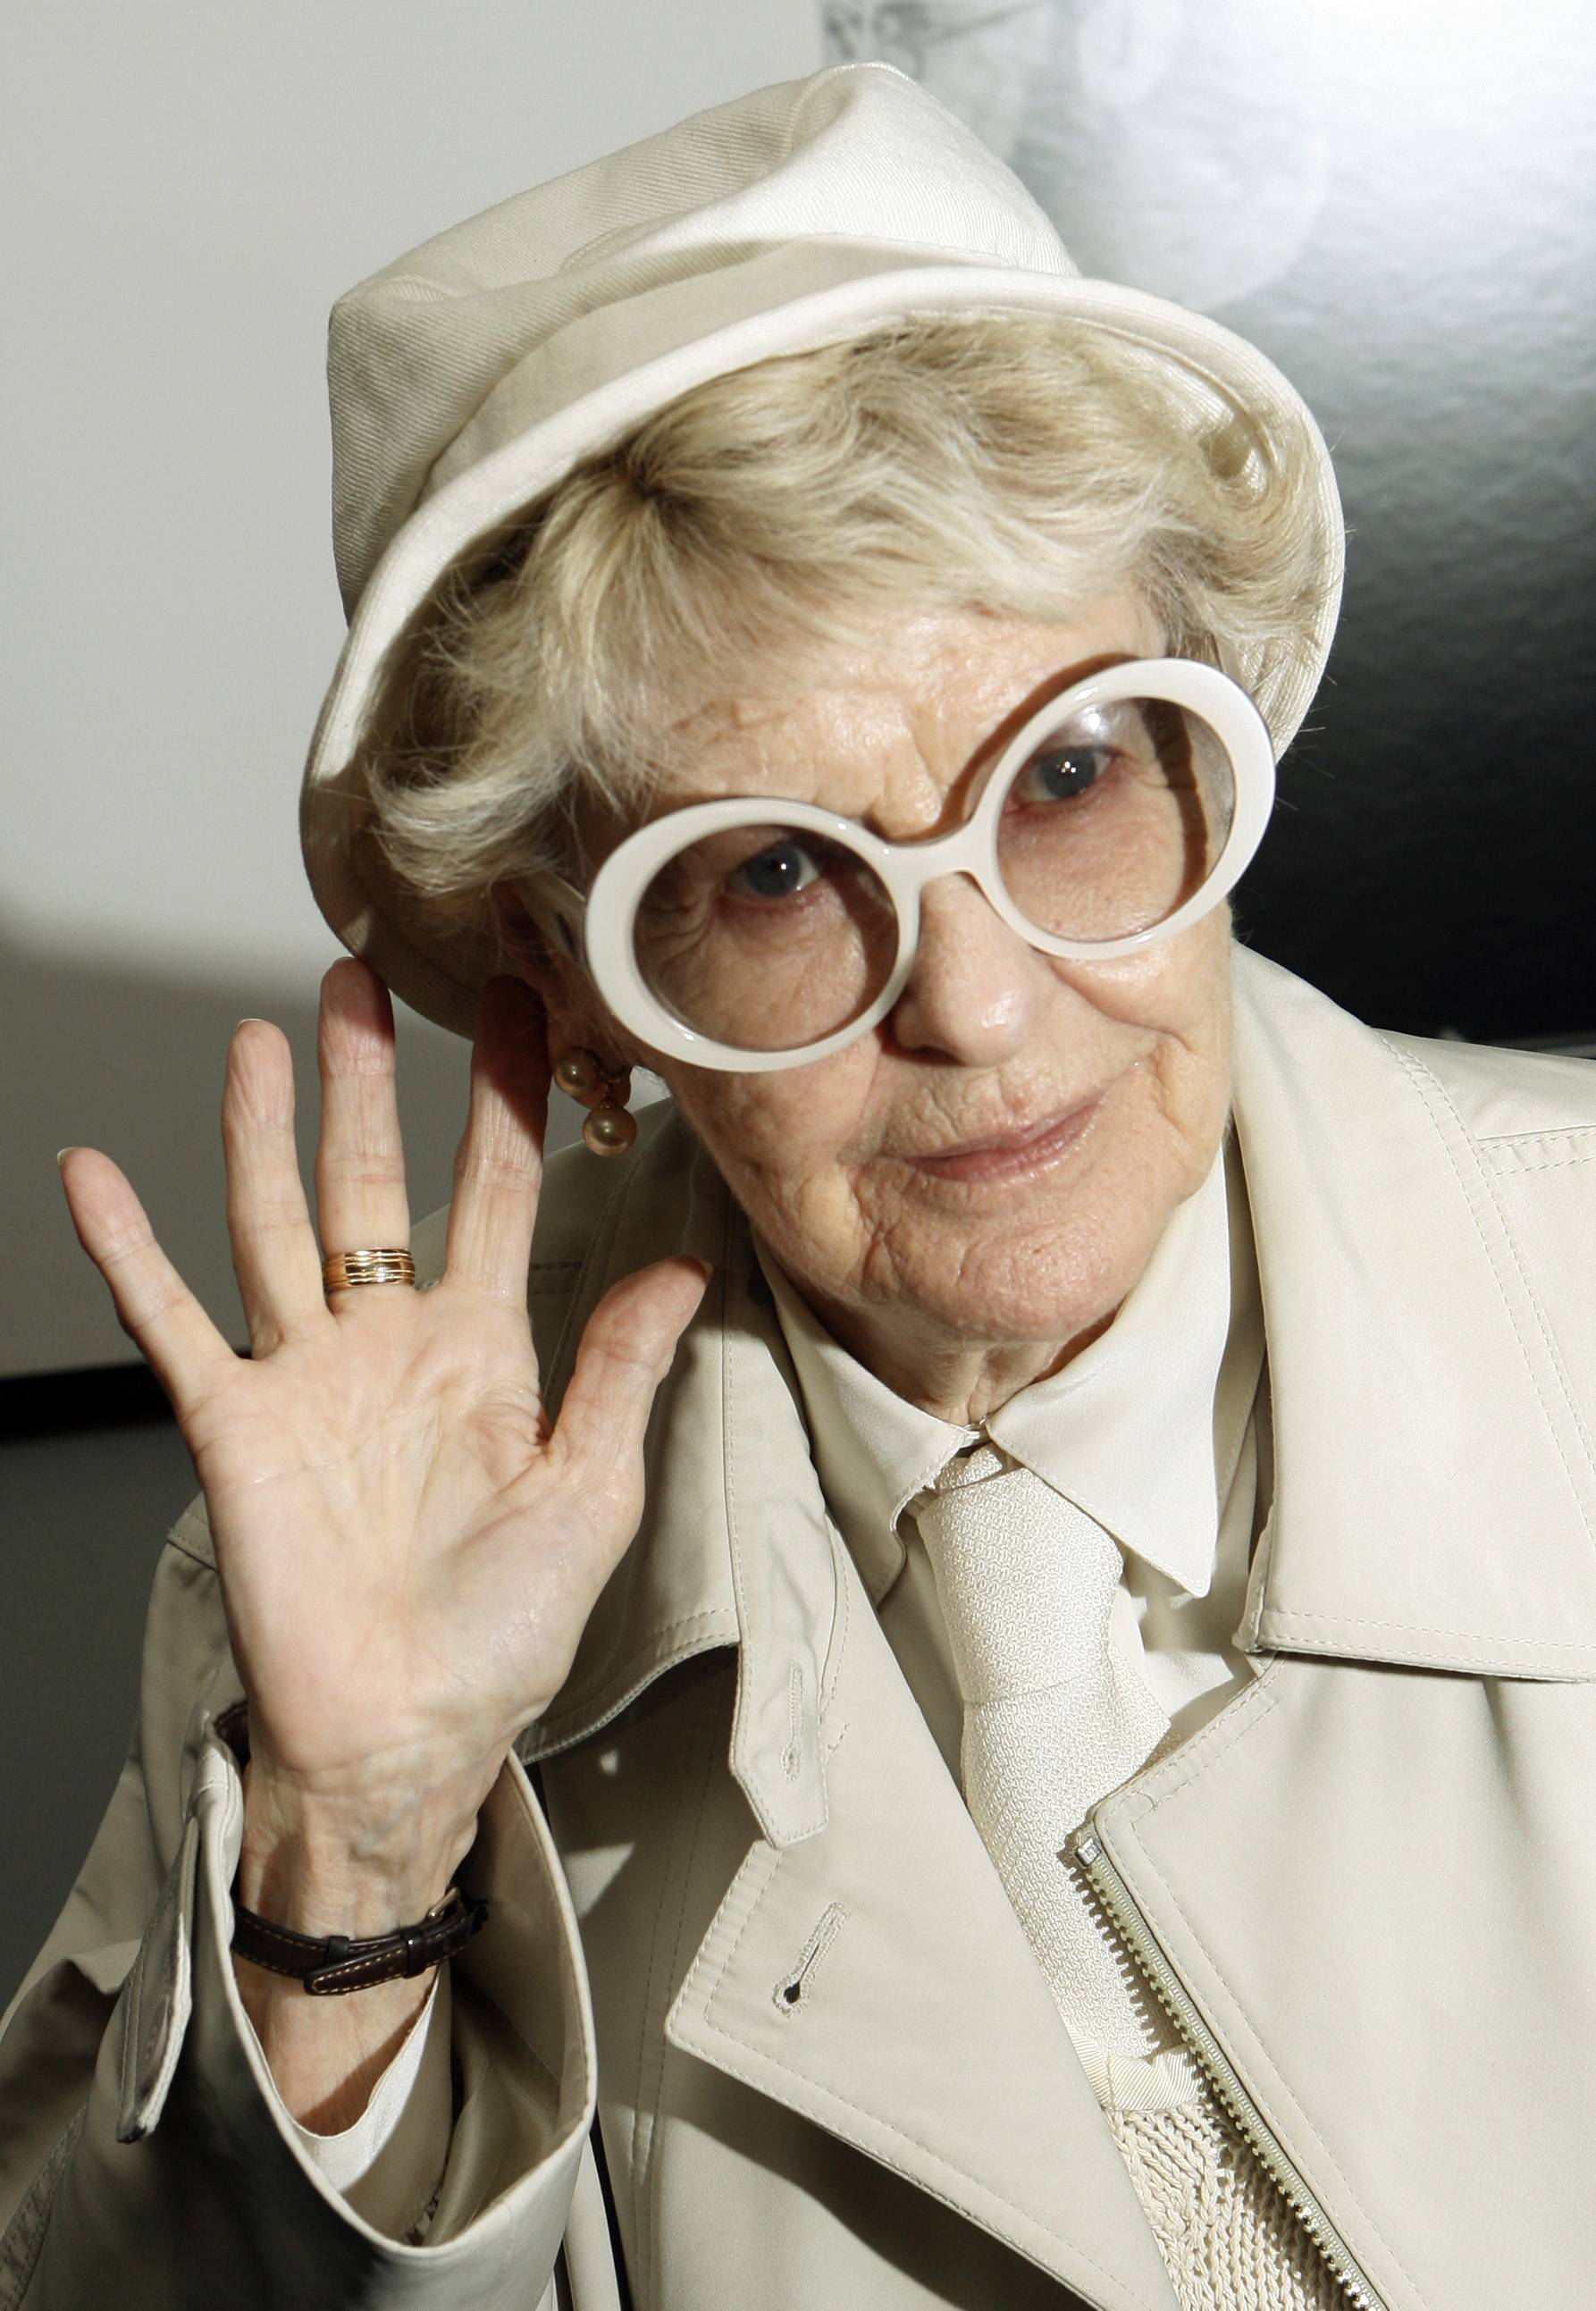 Actress Elaine Stritch died Thursday at her home in Birmingham, Mich. She was 89.